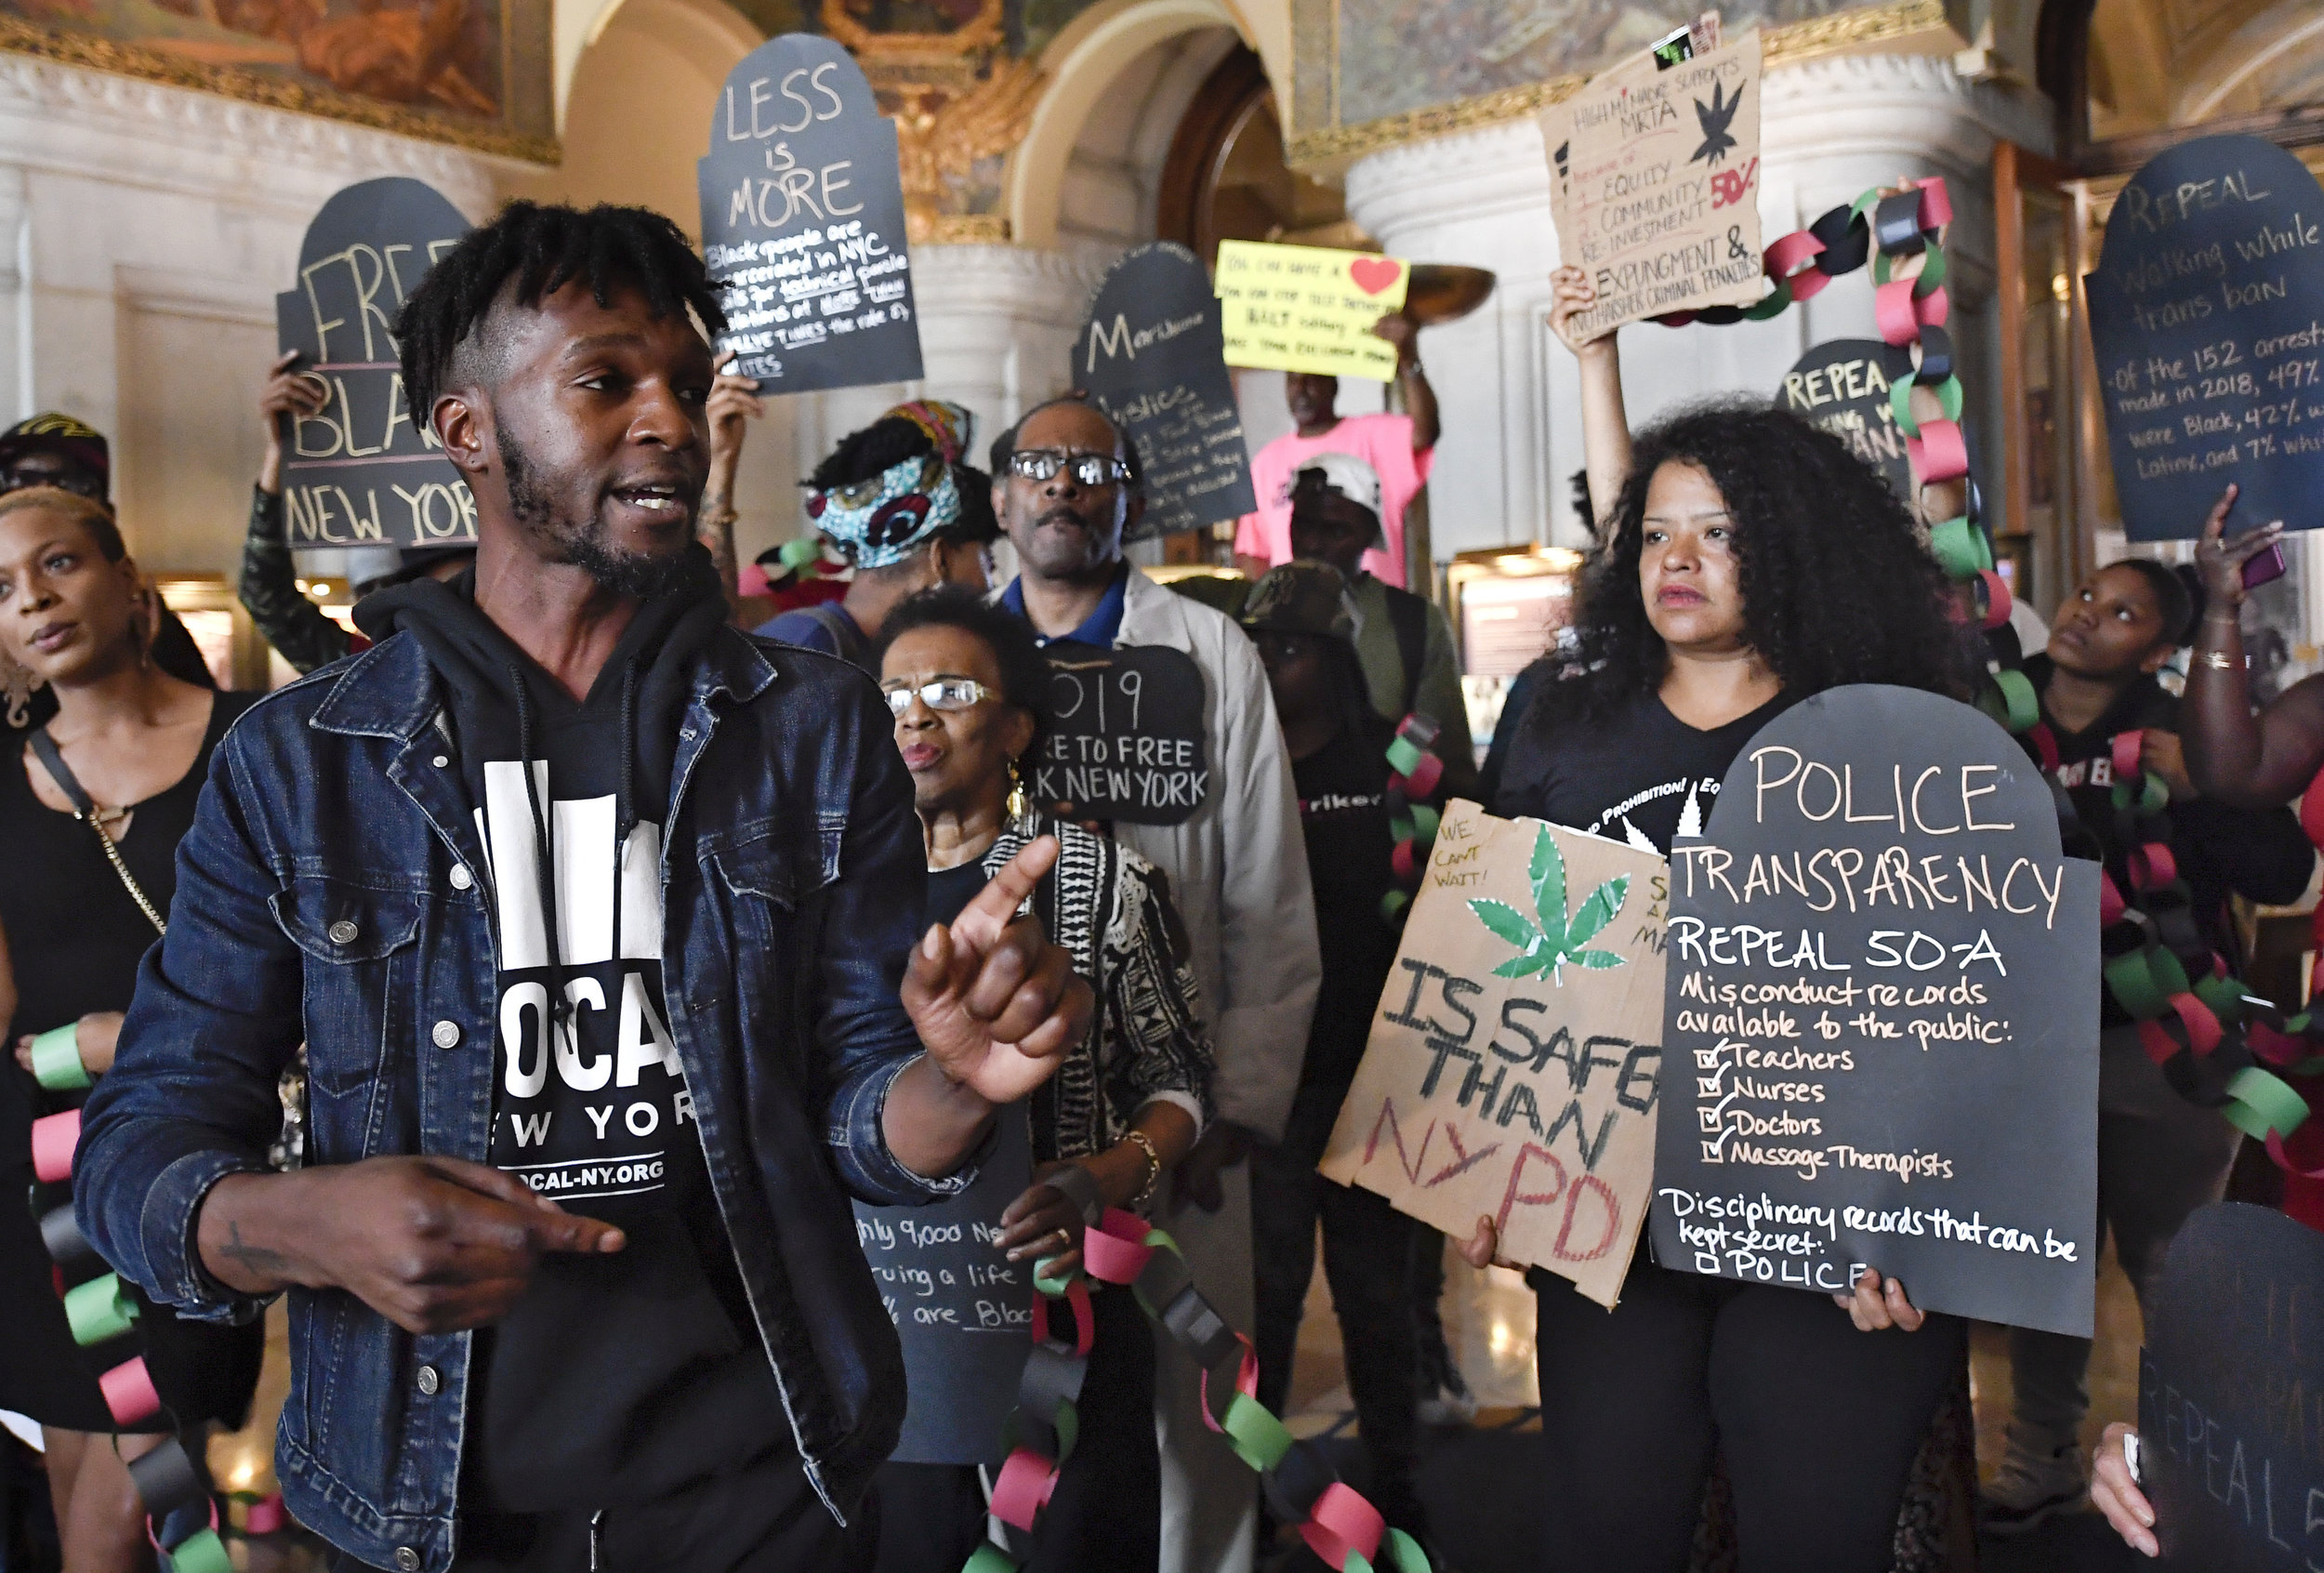 Activists rallied in the state Capitol on June 19 to push for marijuana legalization. AP Photo/Hans Pennink.